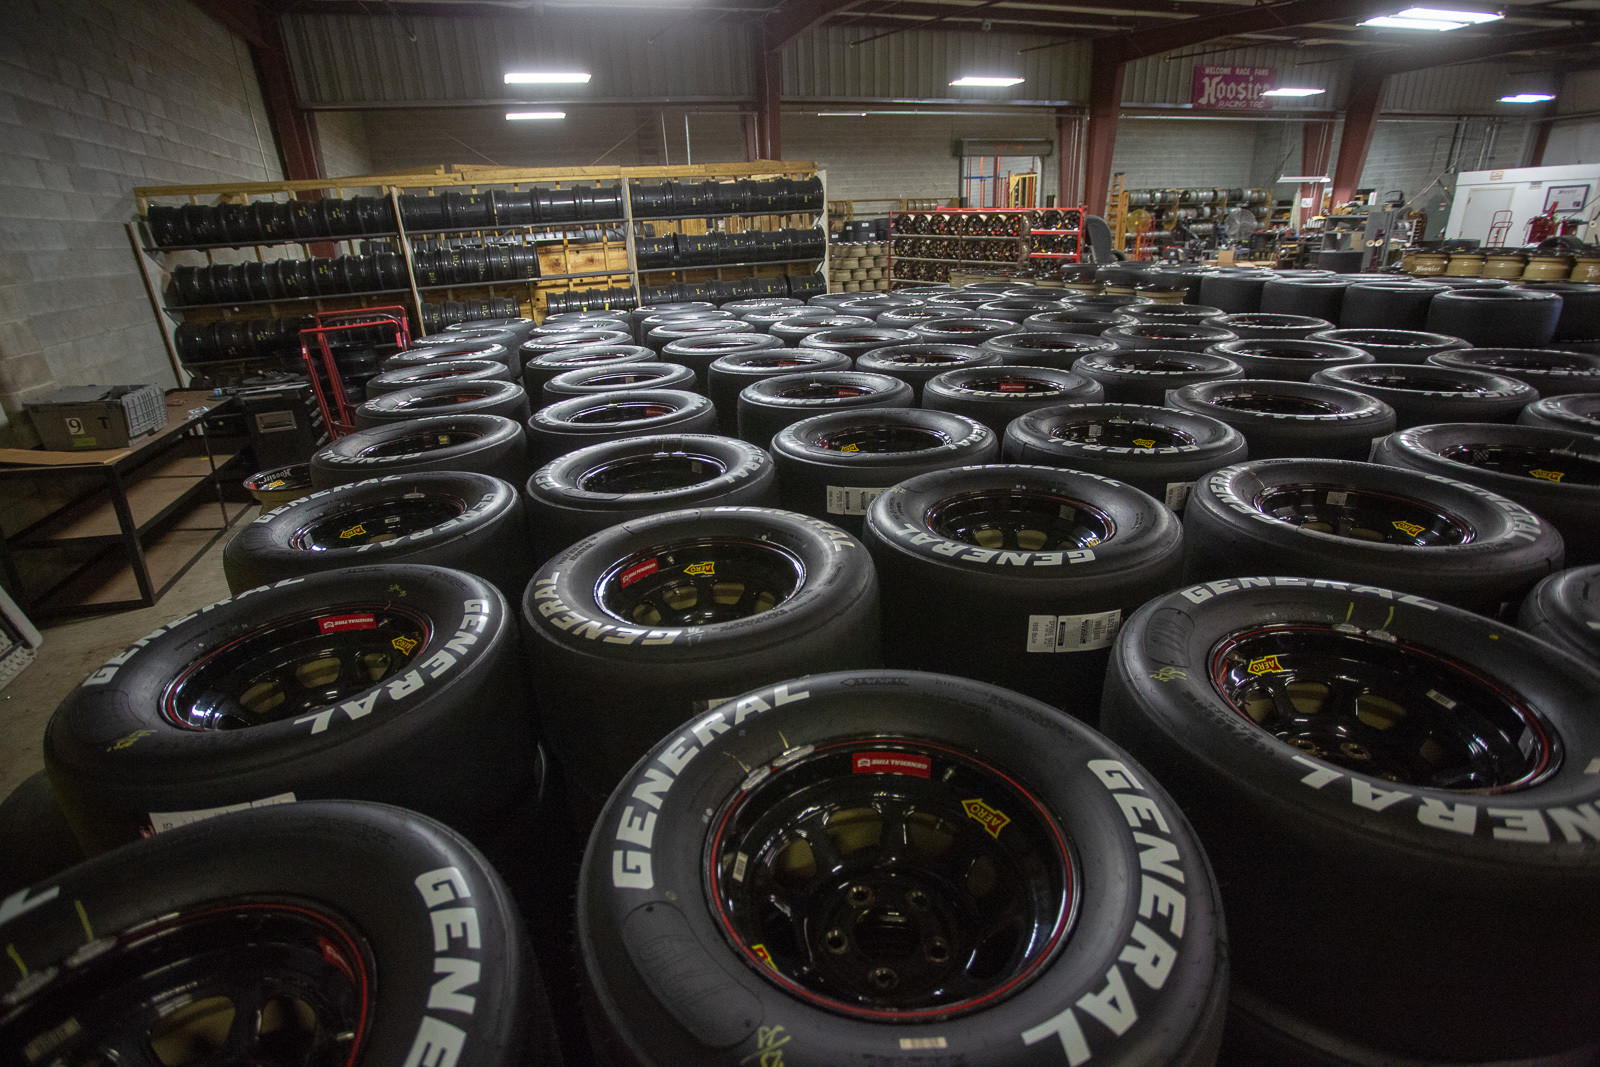 Since late 2016, Hoosier has been owned by Continental Tire, who purchased it from the original founder, Bob Newton. Continental also owns General, which is the official tire for the ARCA series. Rather than mount all the tires at the racetrack for that series, these are actually pre-mounted at their headquarters ahead of each event. That means Hoosier (rather than the teams) also own all the wheels.